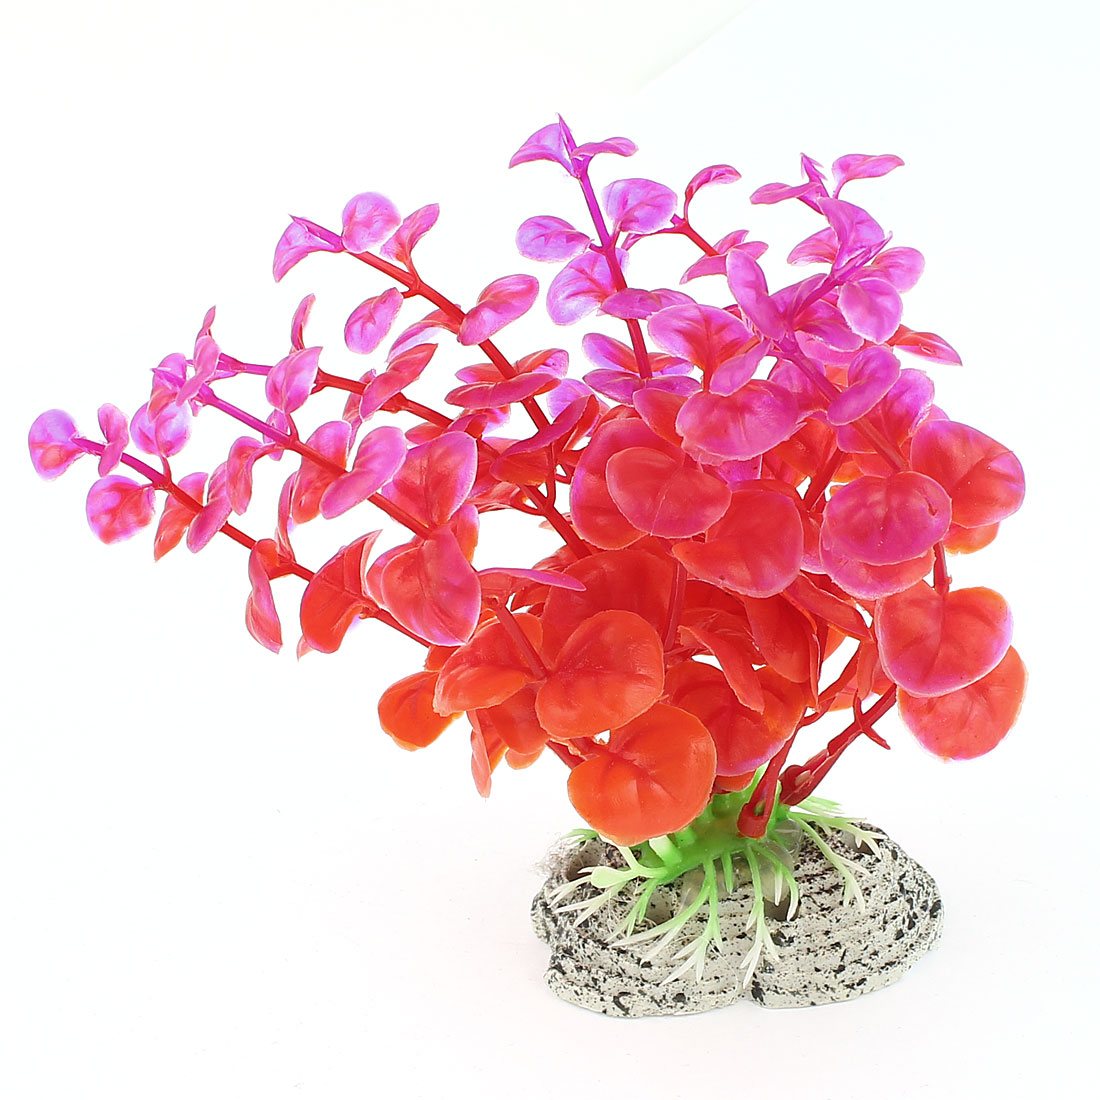 Aquarium Red Fuchsia Plastic Artificial Grass Plant Decoration 12cm Height